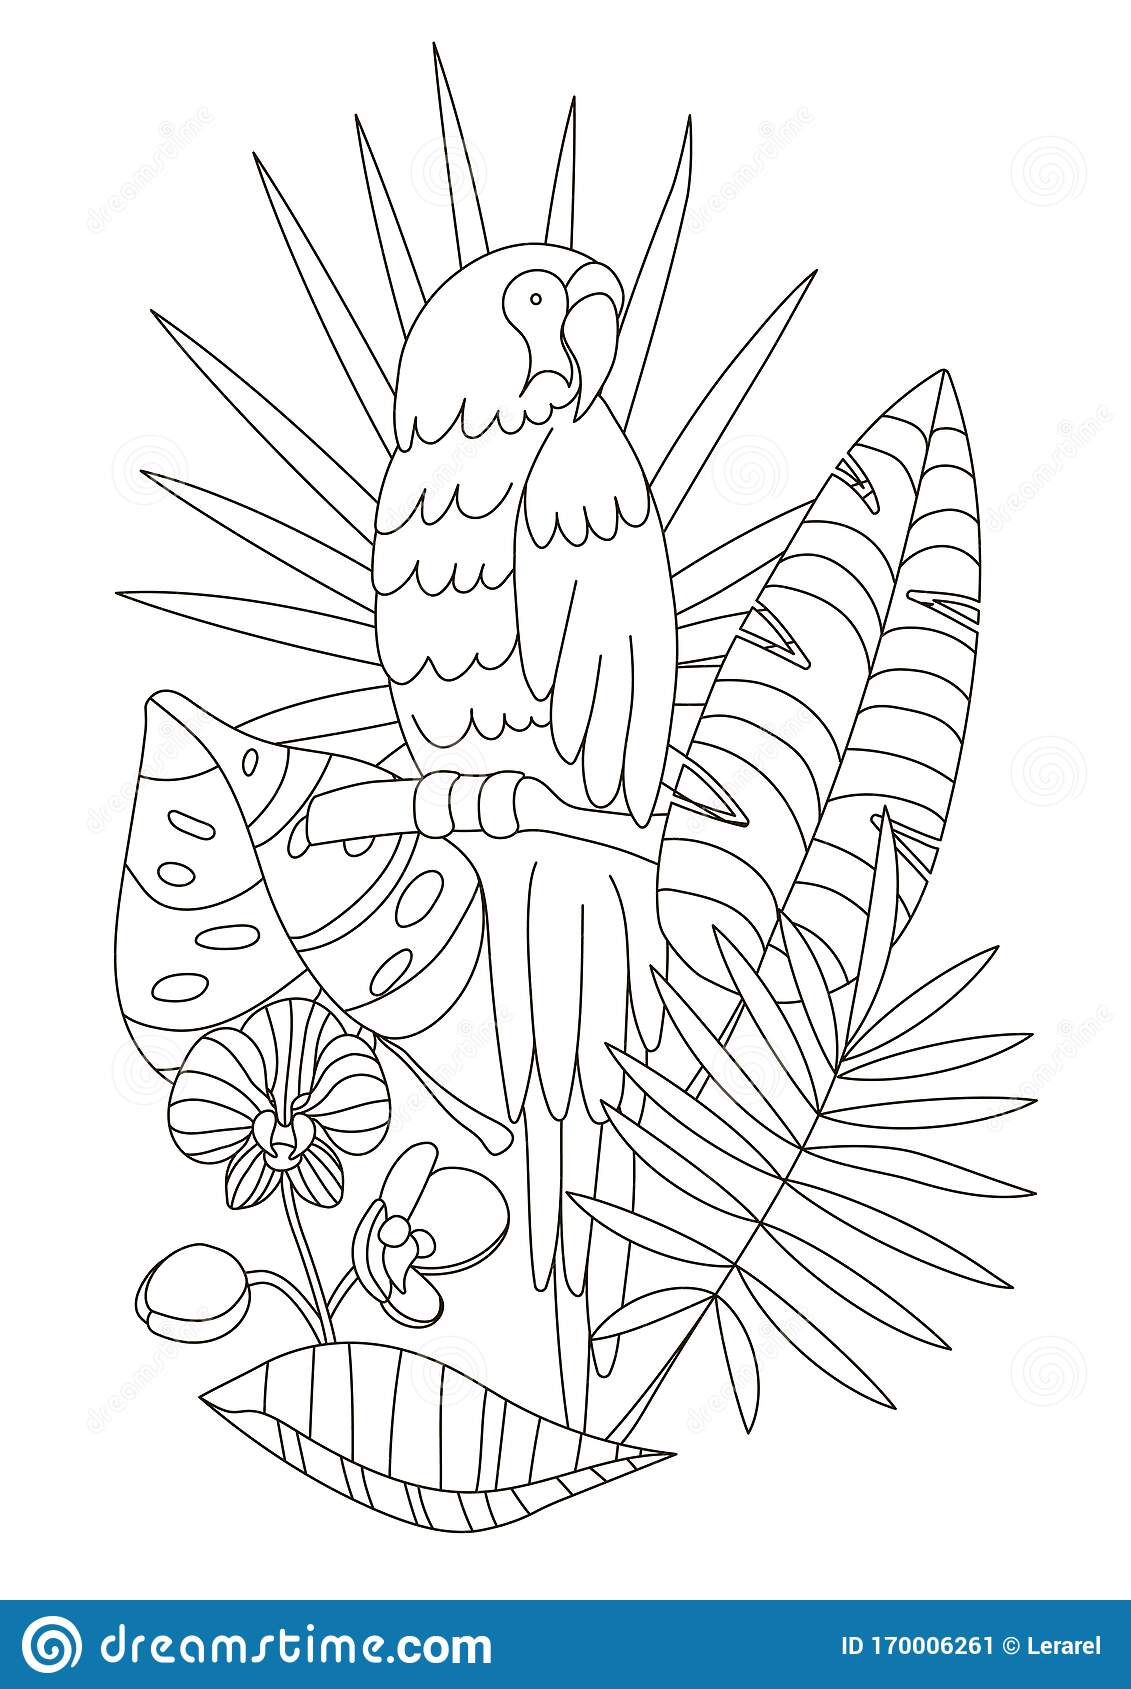 Flower Pen Drawing - Tropical Flower Coloring Pages, HD Png ...   1689x1131